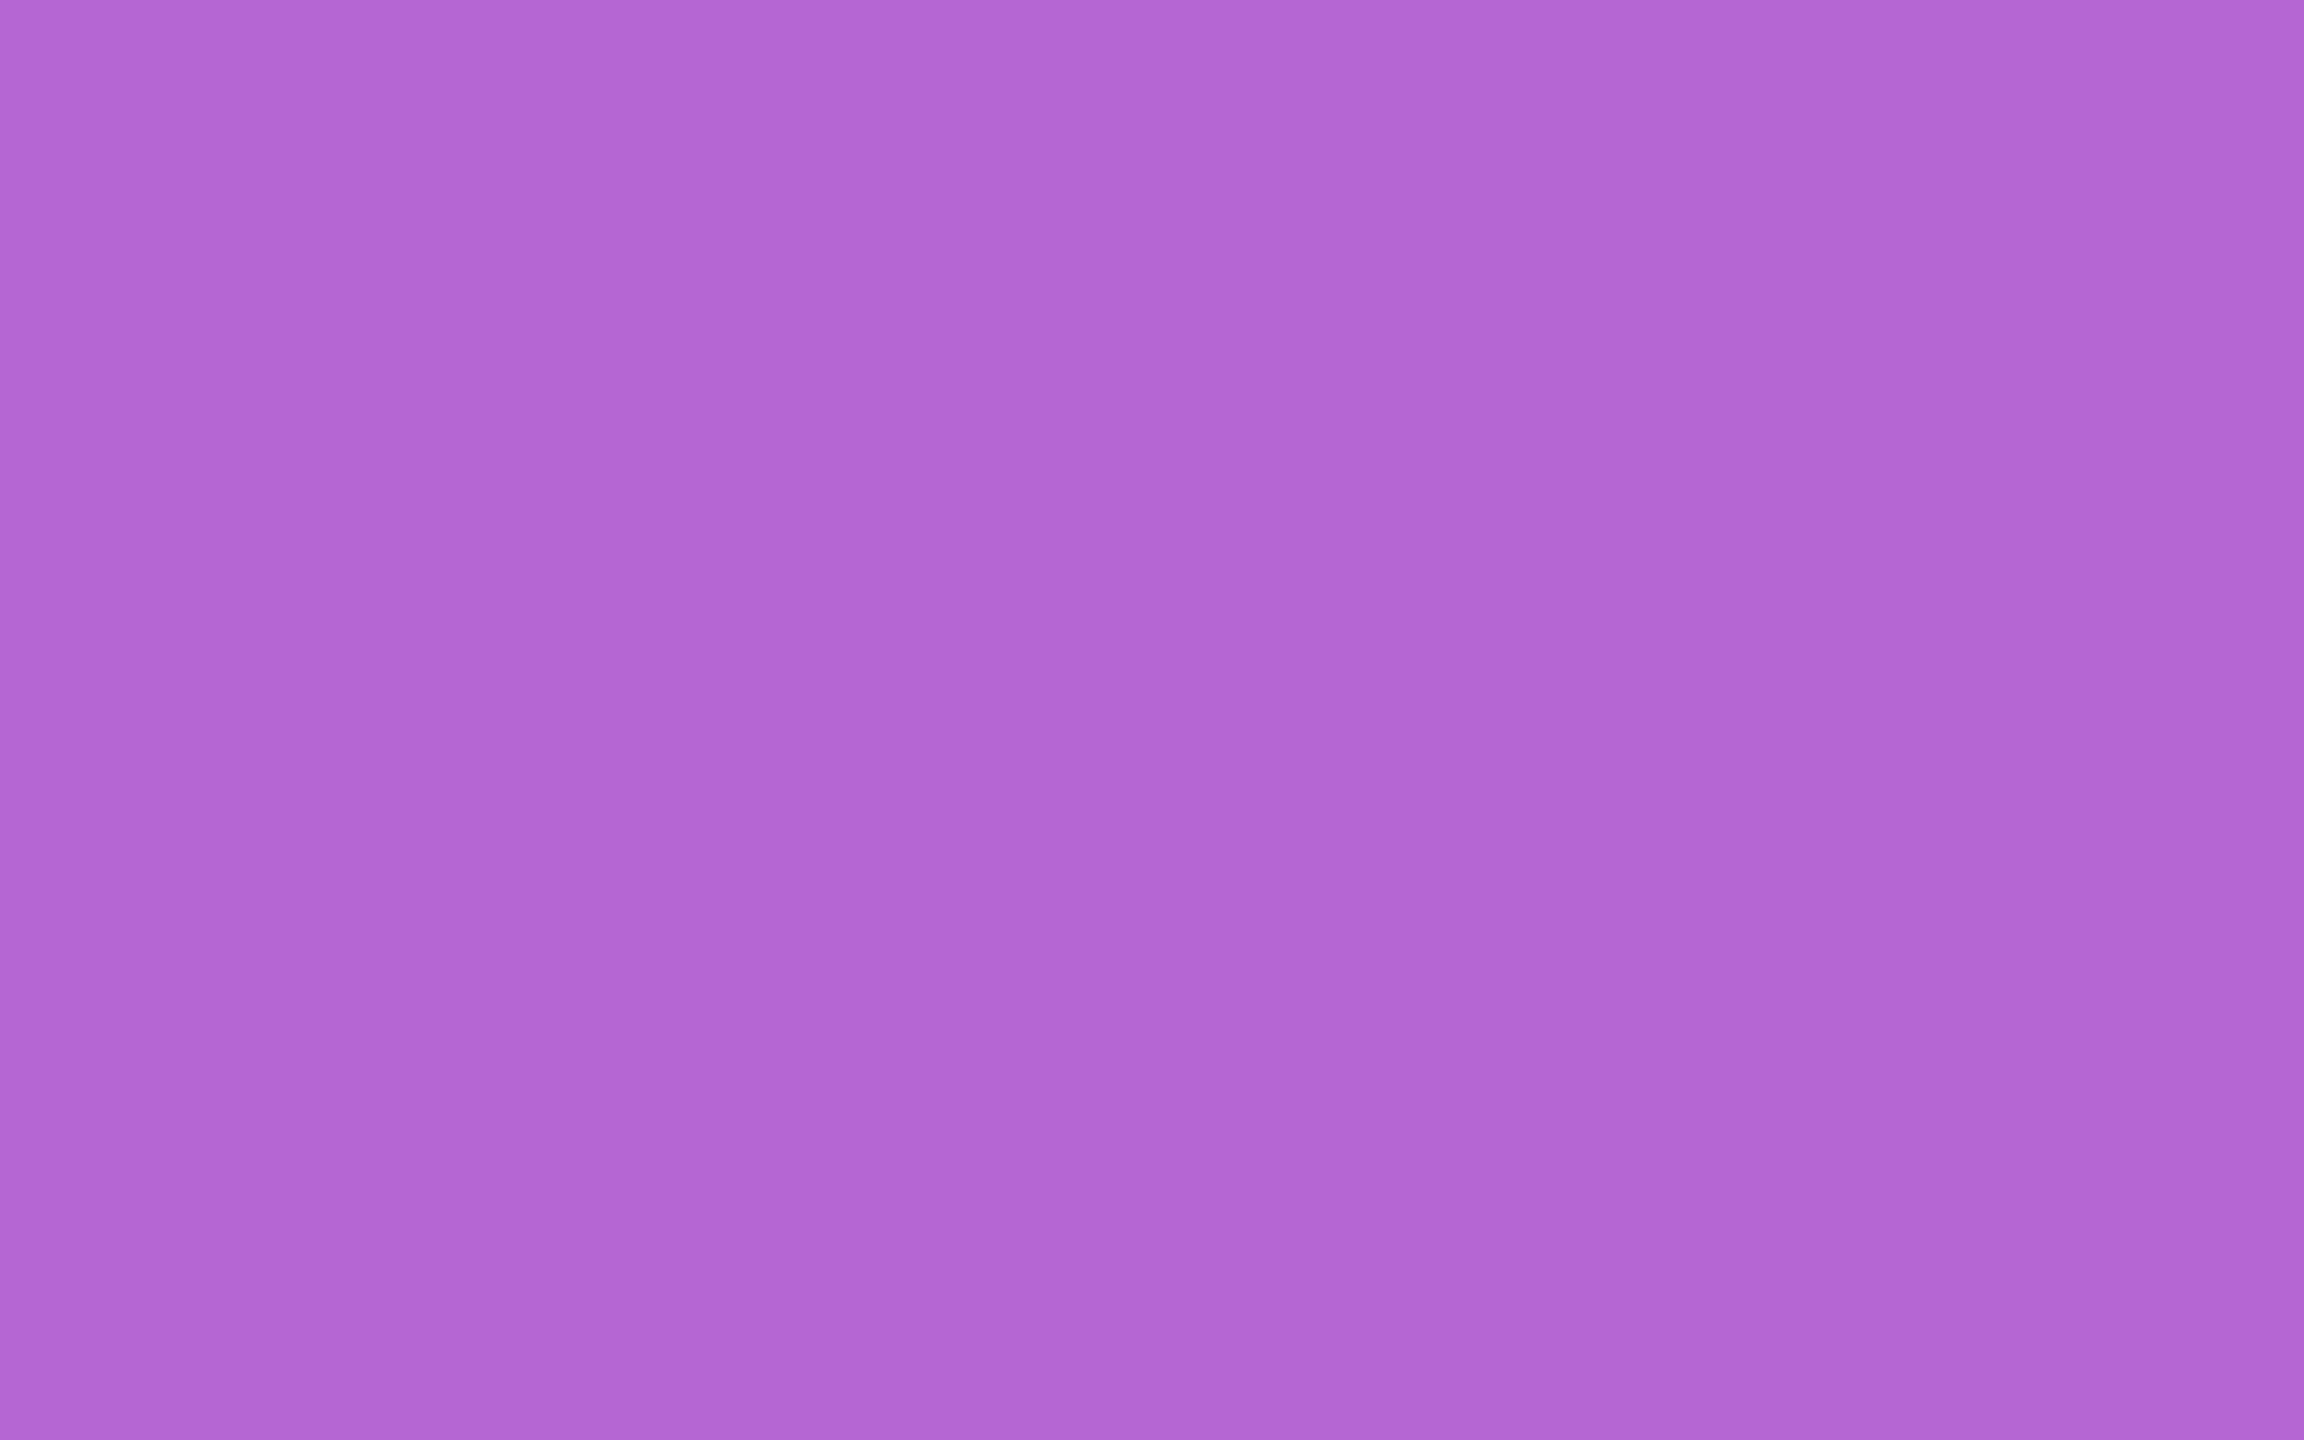 2304x1440 Rich Lilac Solid Color Background